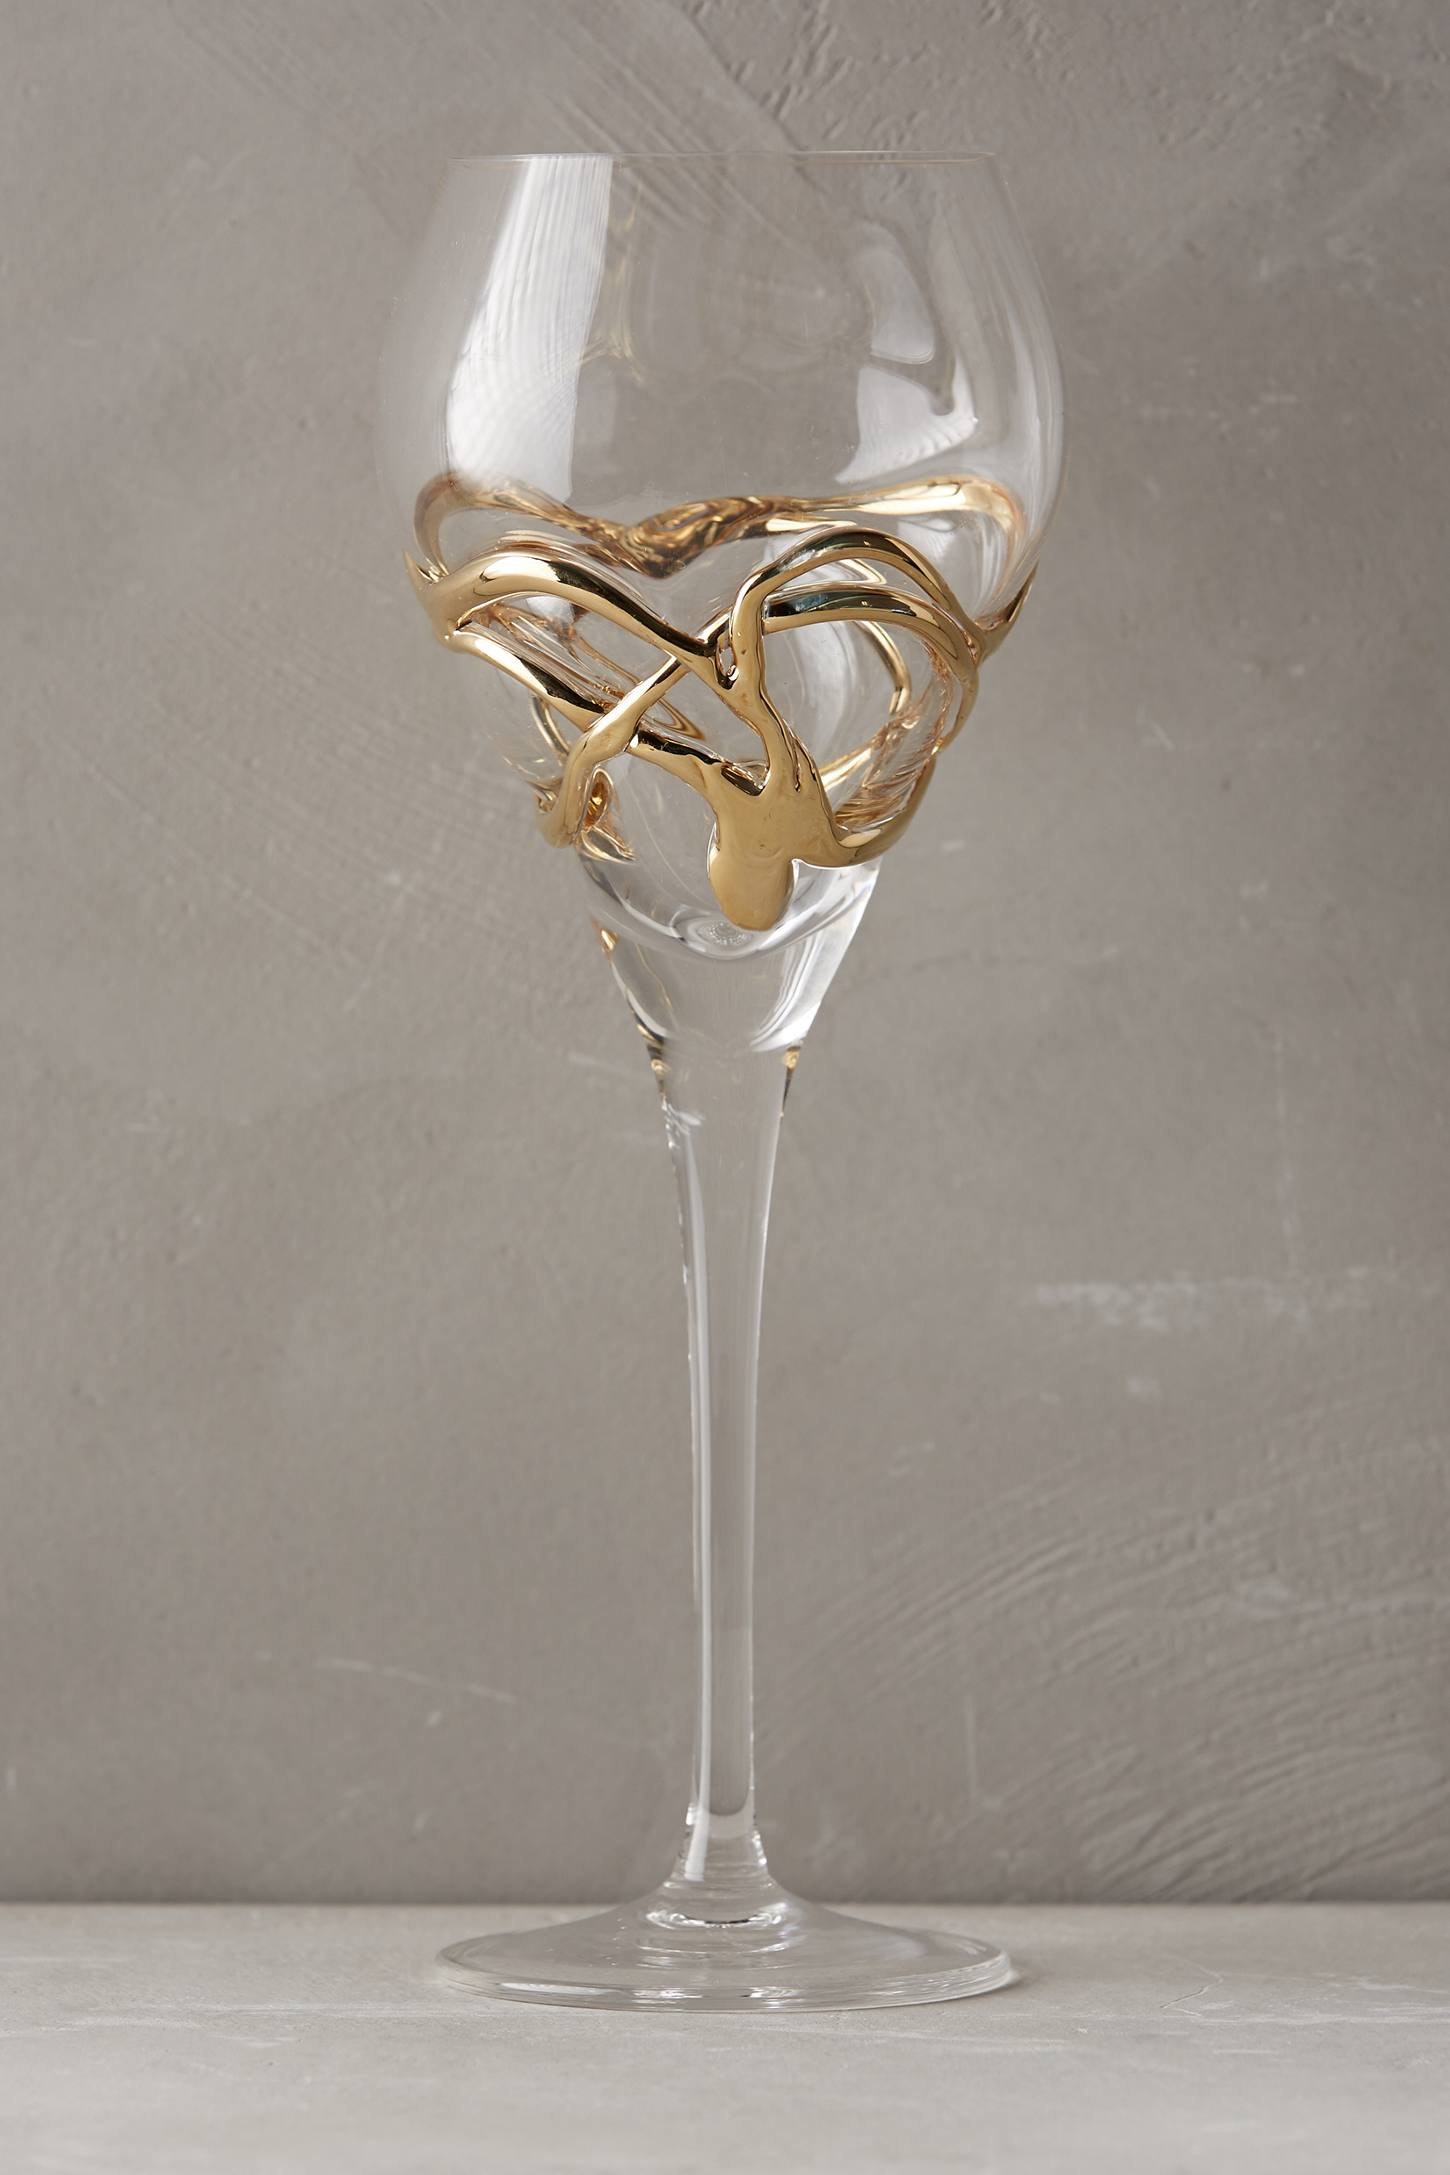 Slide View: 2: Glimmer-Wrapped White Wine Glass